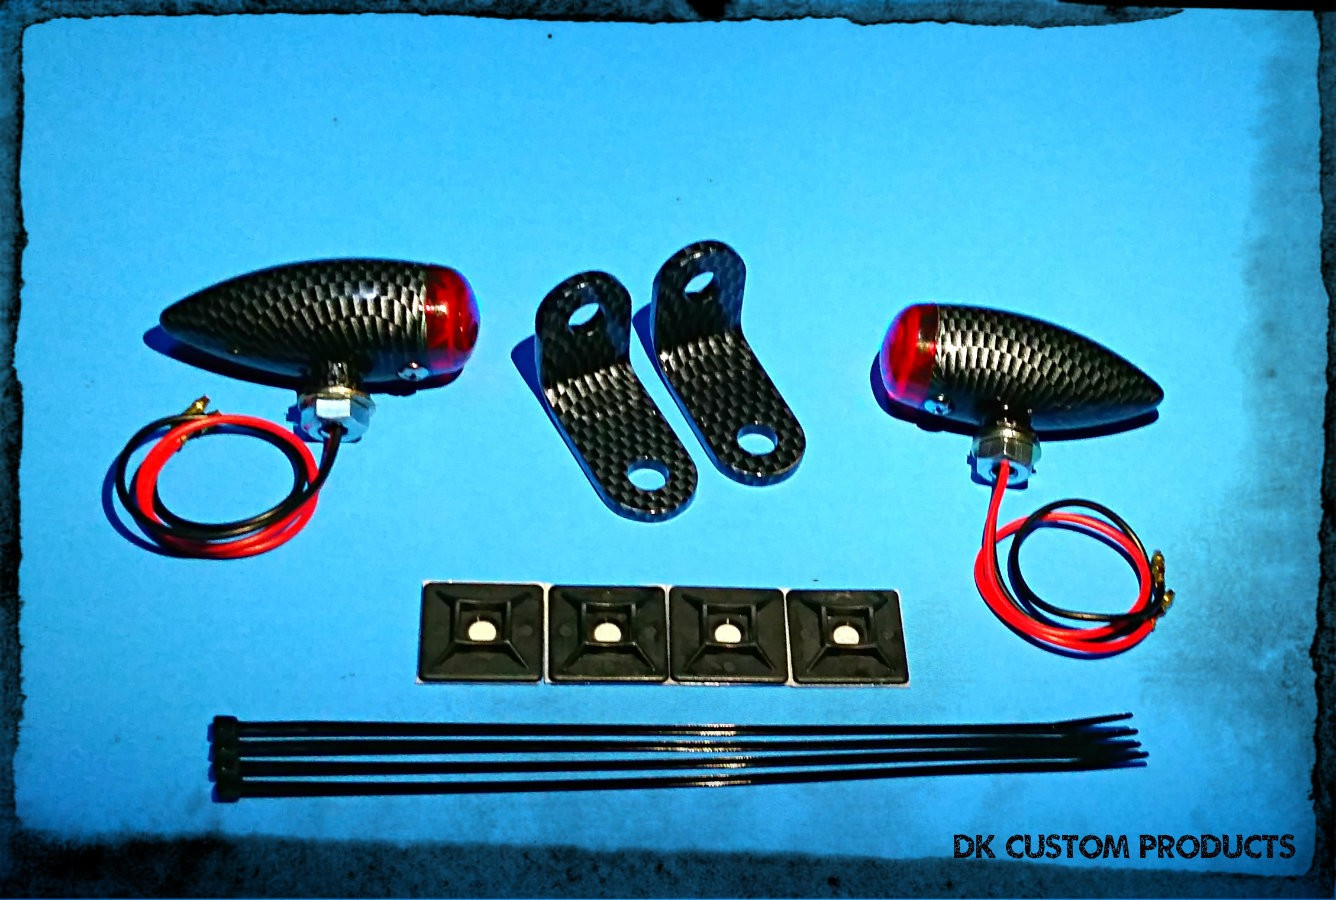 Carbon Fiber Look CFL Streamliner Bullet Back Turn Signal & Marker Lights Relocation Kit DK Custom Products Harley-Davidson  Universal fit for 12 volt motorcycles SEE & BE SEEN